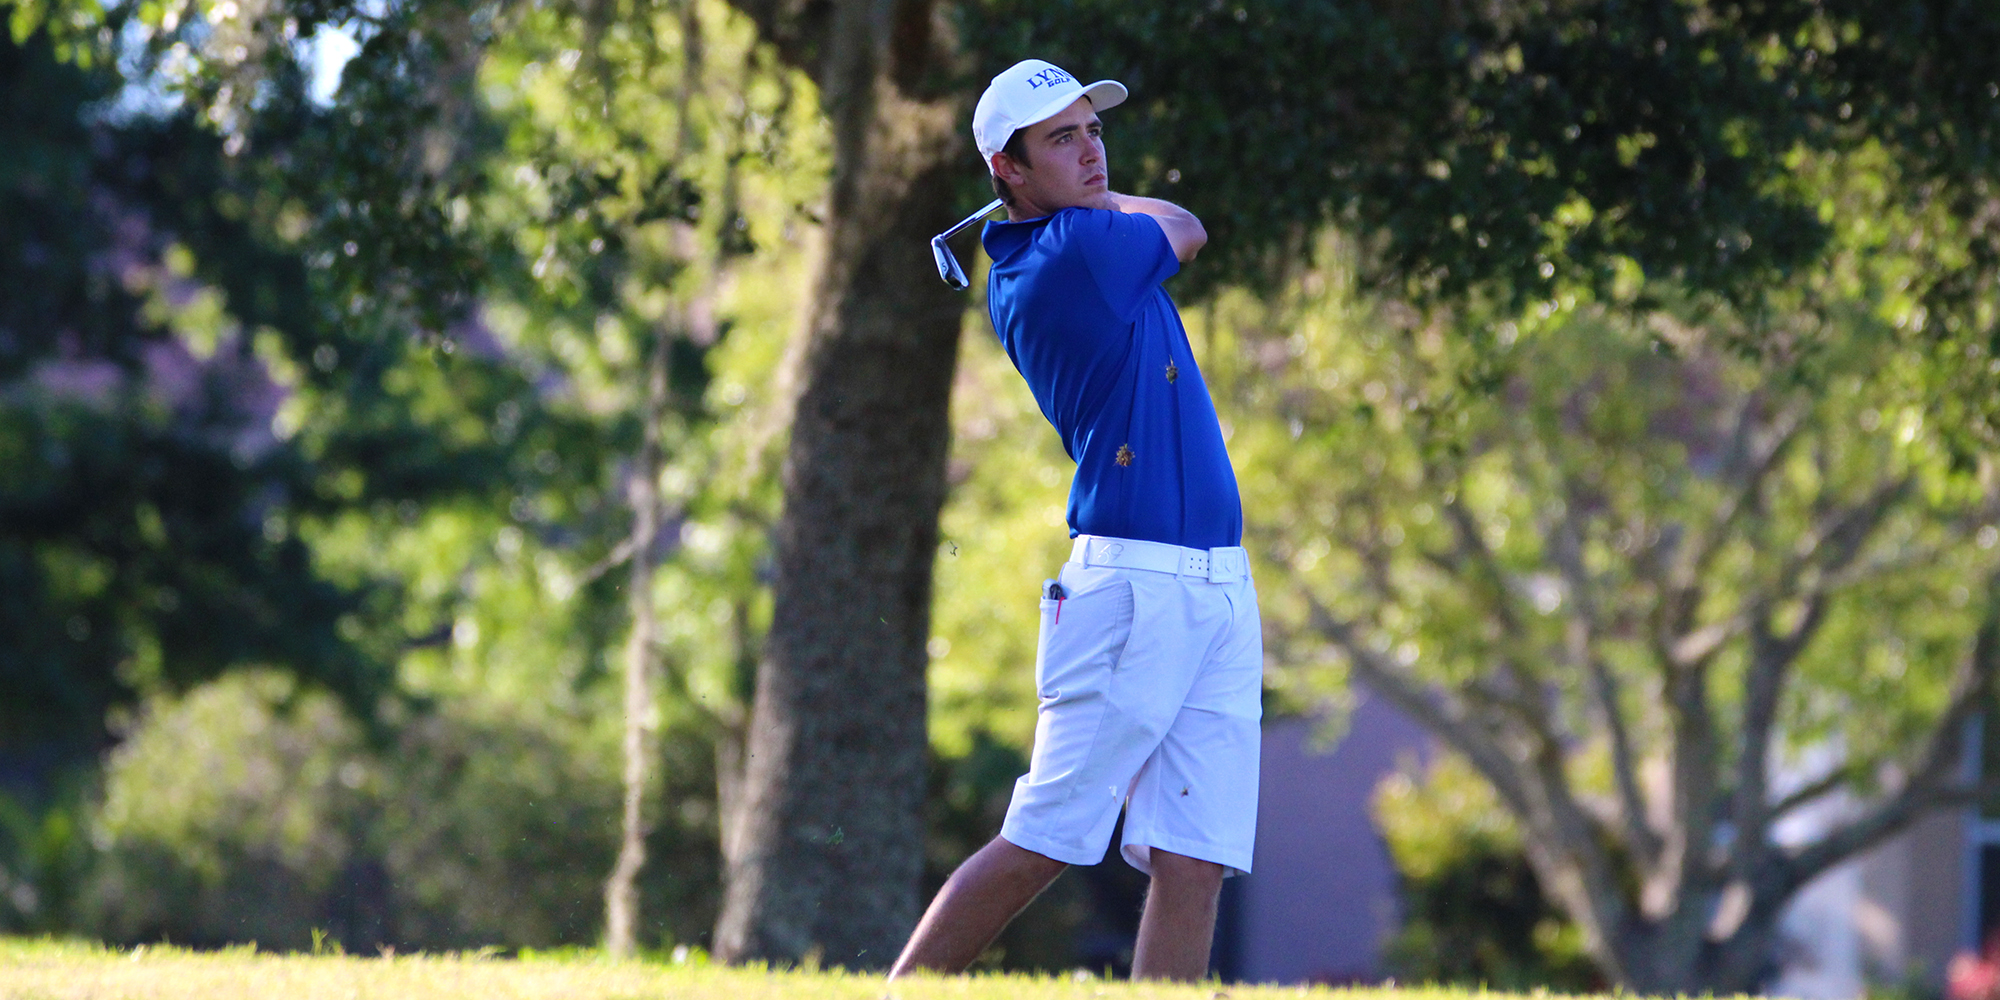 Men's Golf Grabs Share of Lead at NCAA South/Southeast Regional